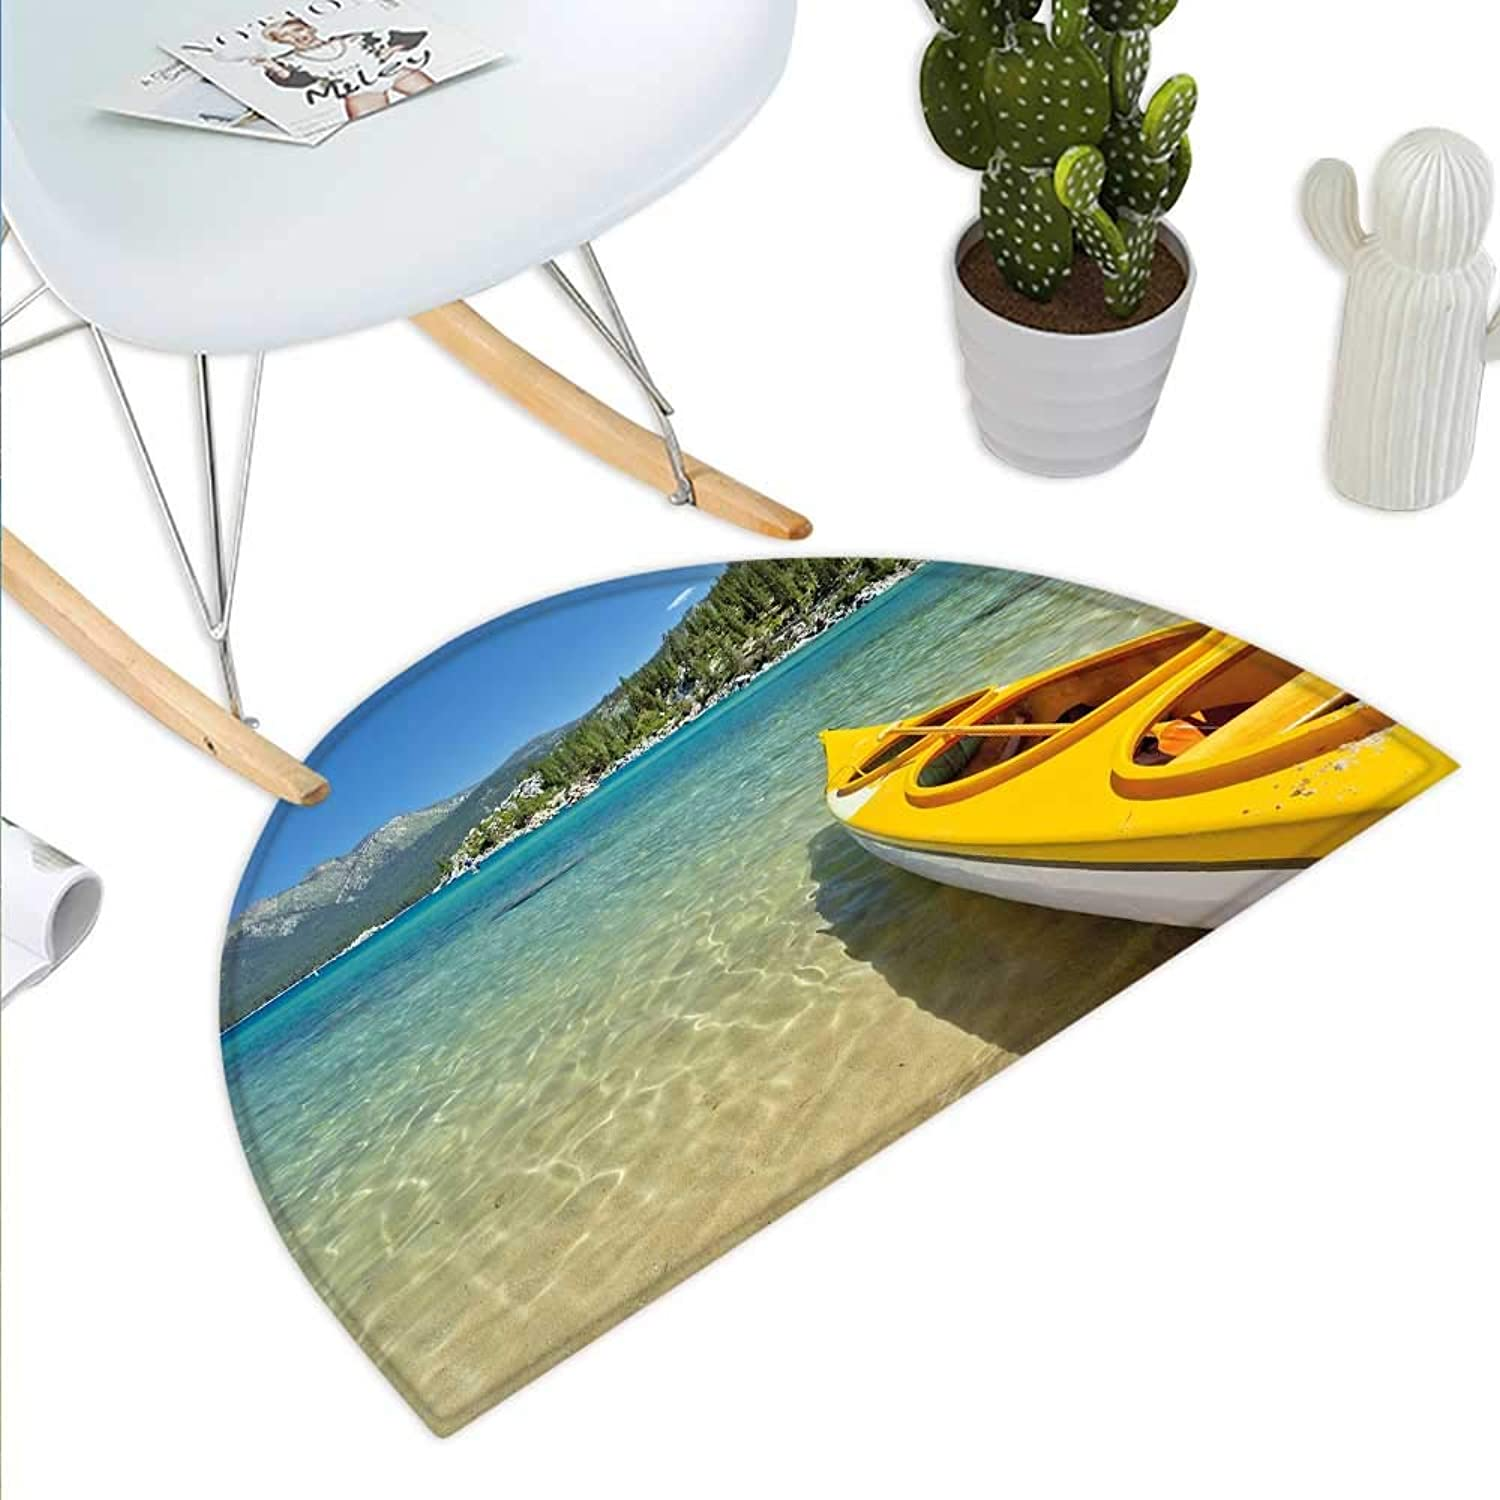 Lake Tahoe Semicircle Doormat Extreme Sports in Wild Lakeside Places Scenic Activities Halfmoon doormats H 43.3  xD 64.9  Turquoise Sky bluee Lime Green